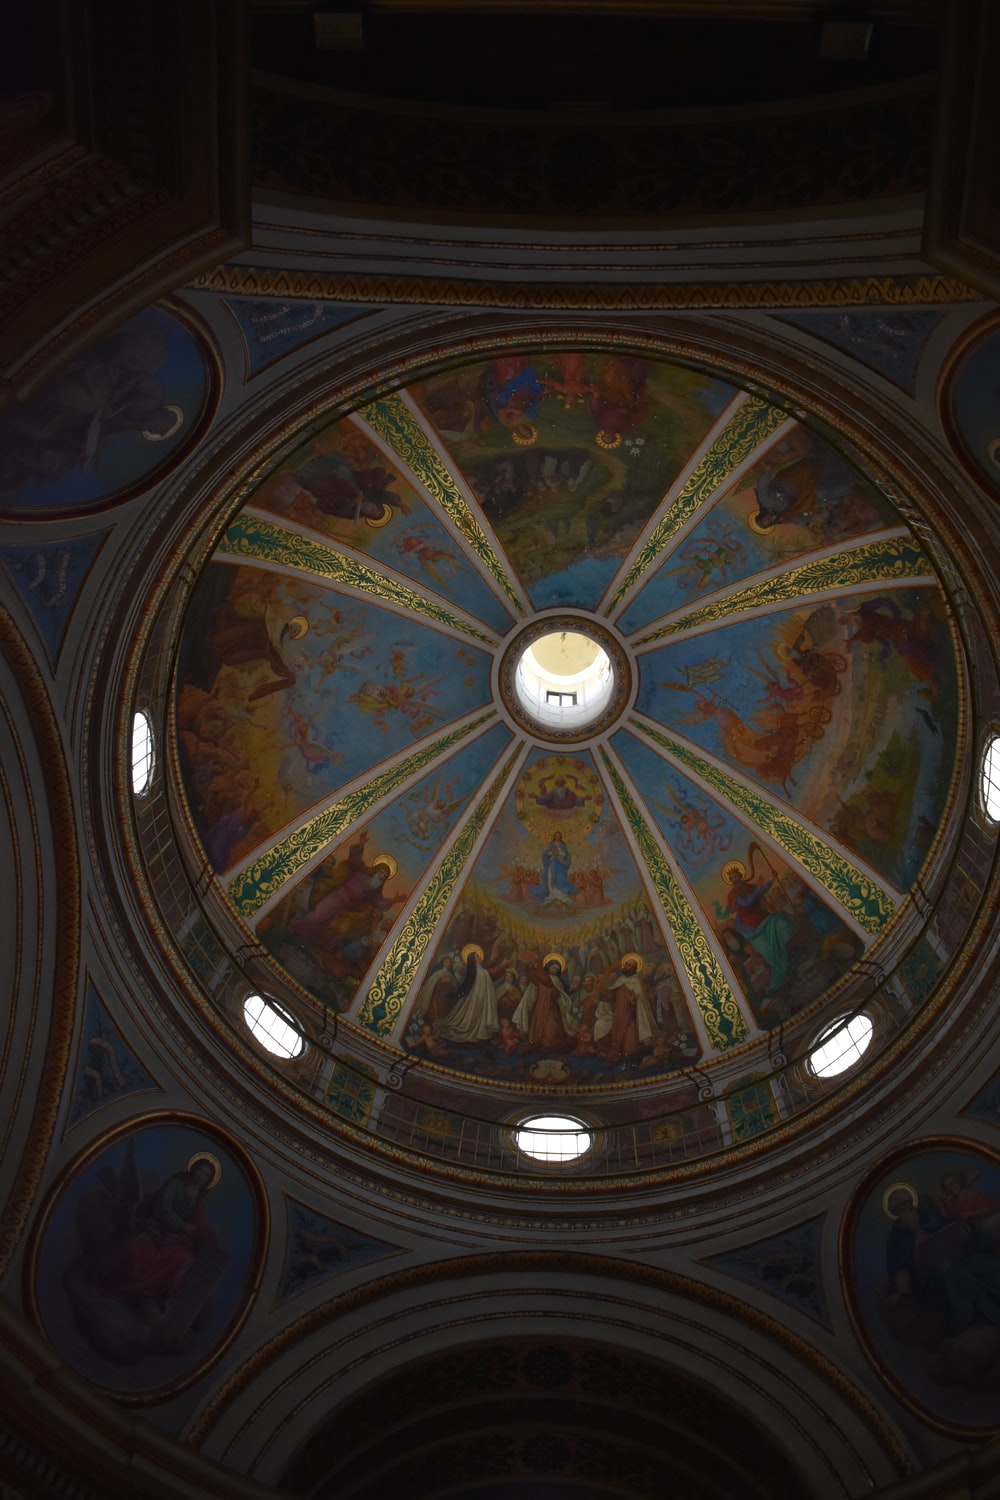 blue and brown dome ceiling